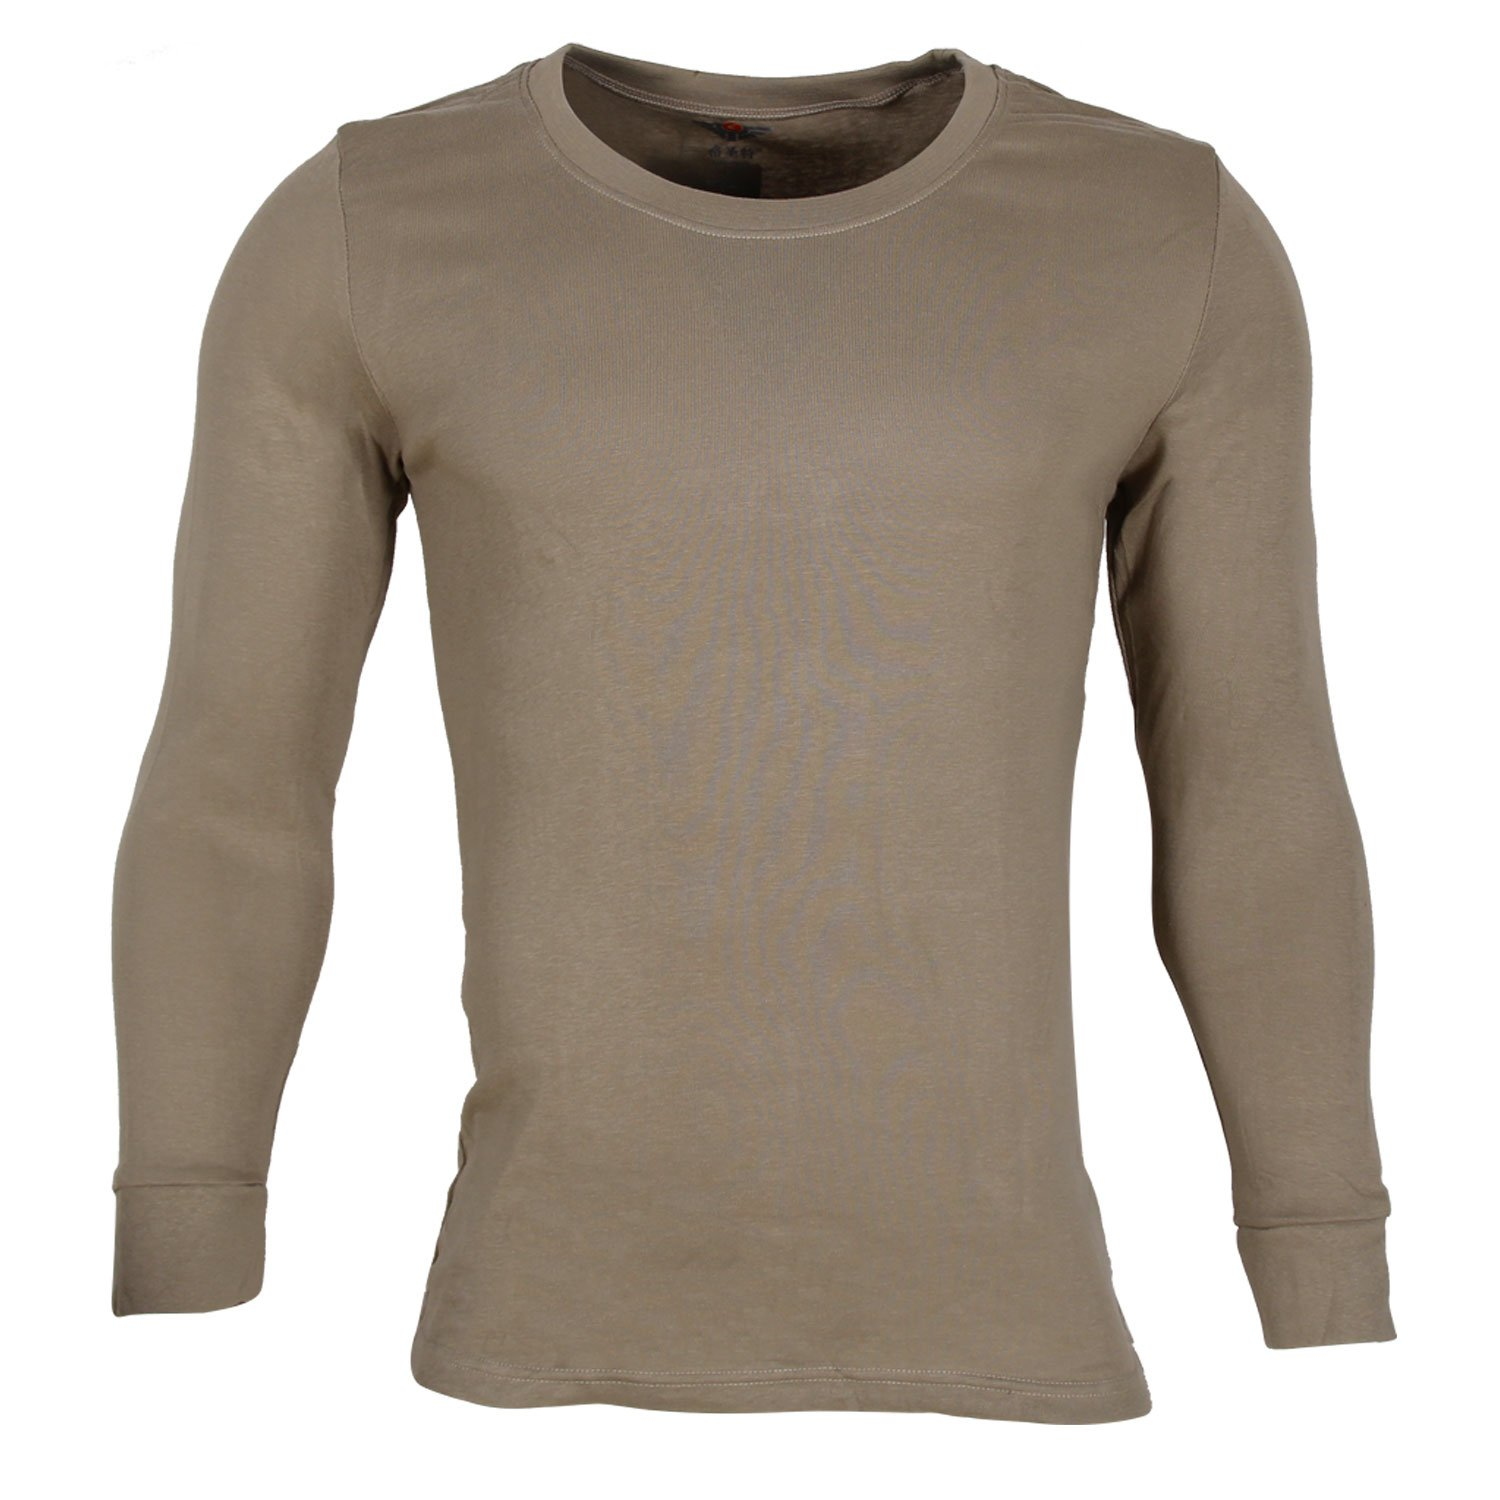 Godsen Men's Cotton Thermal Underwear Long Sleeve T-Shirt Top 8521801A